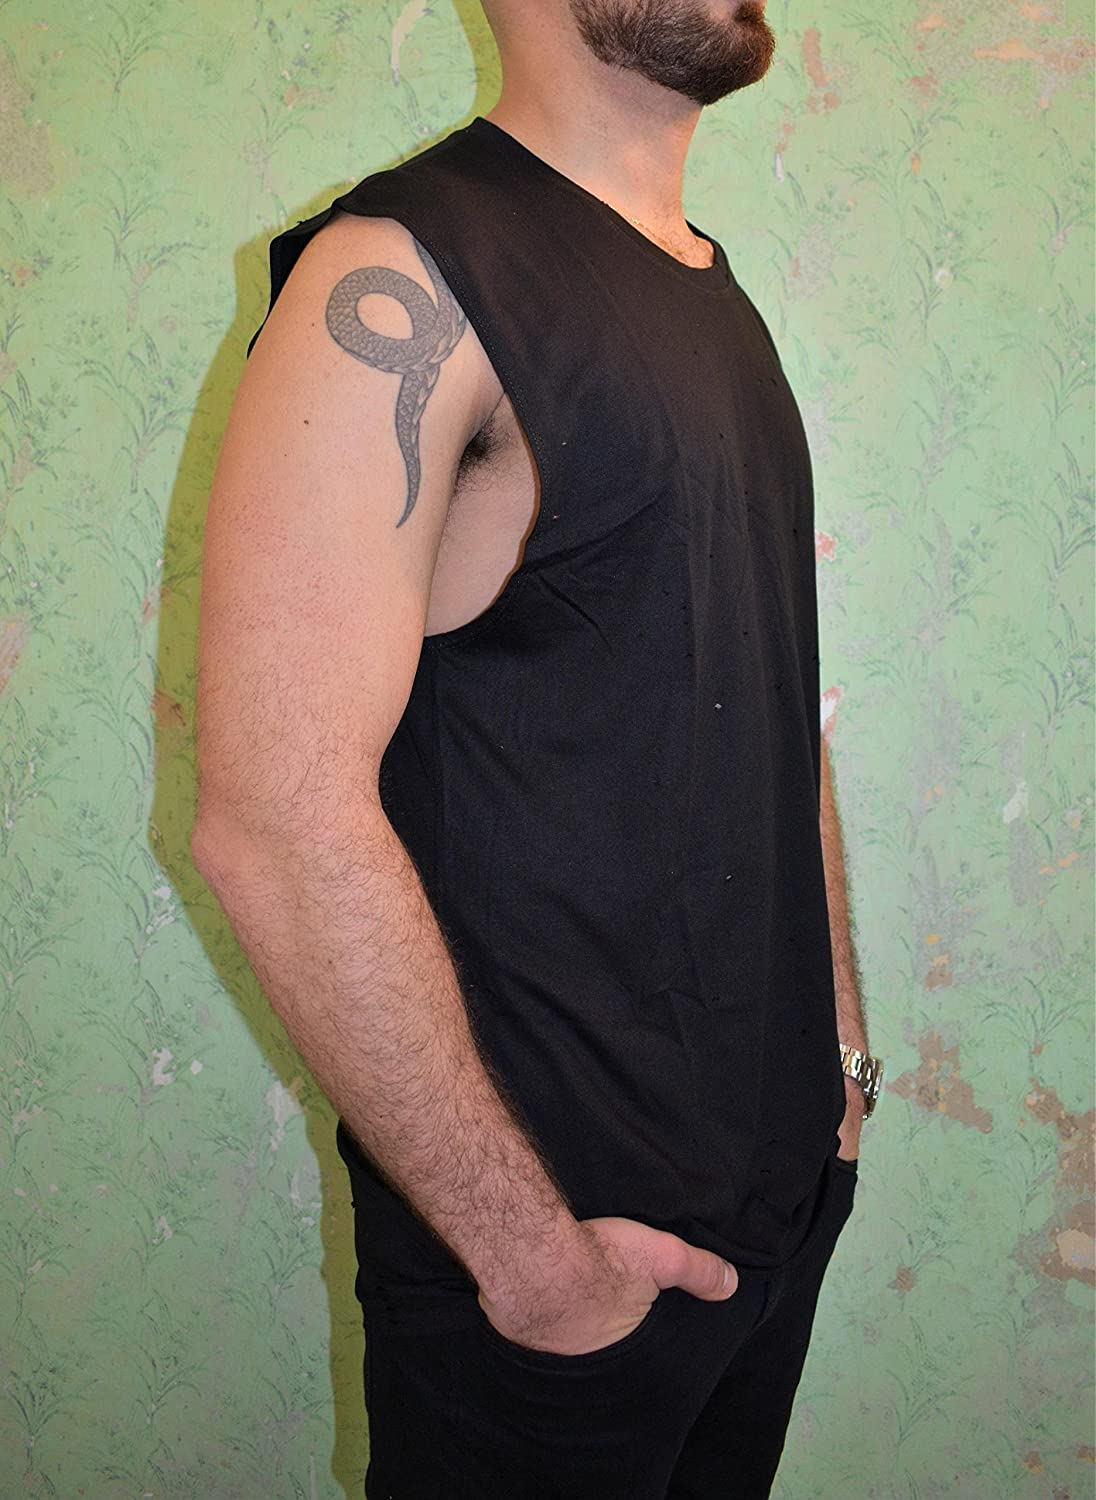 Men's Black Very popular specialty shop Tank Top Sleeveless Shirt Size Loose Tr L Wide Fit